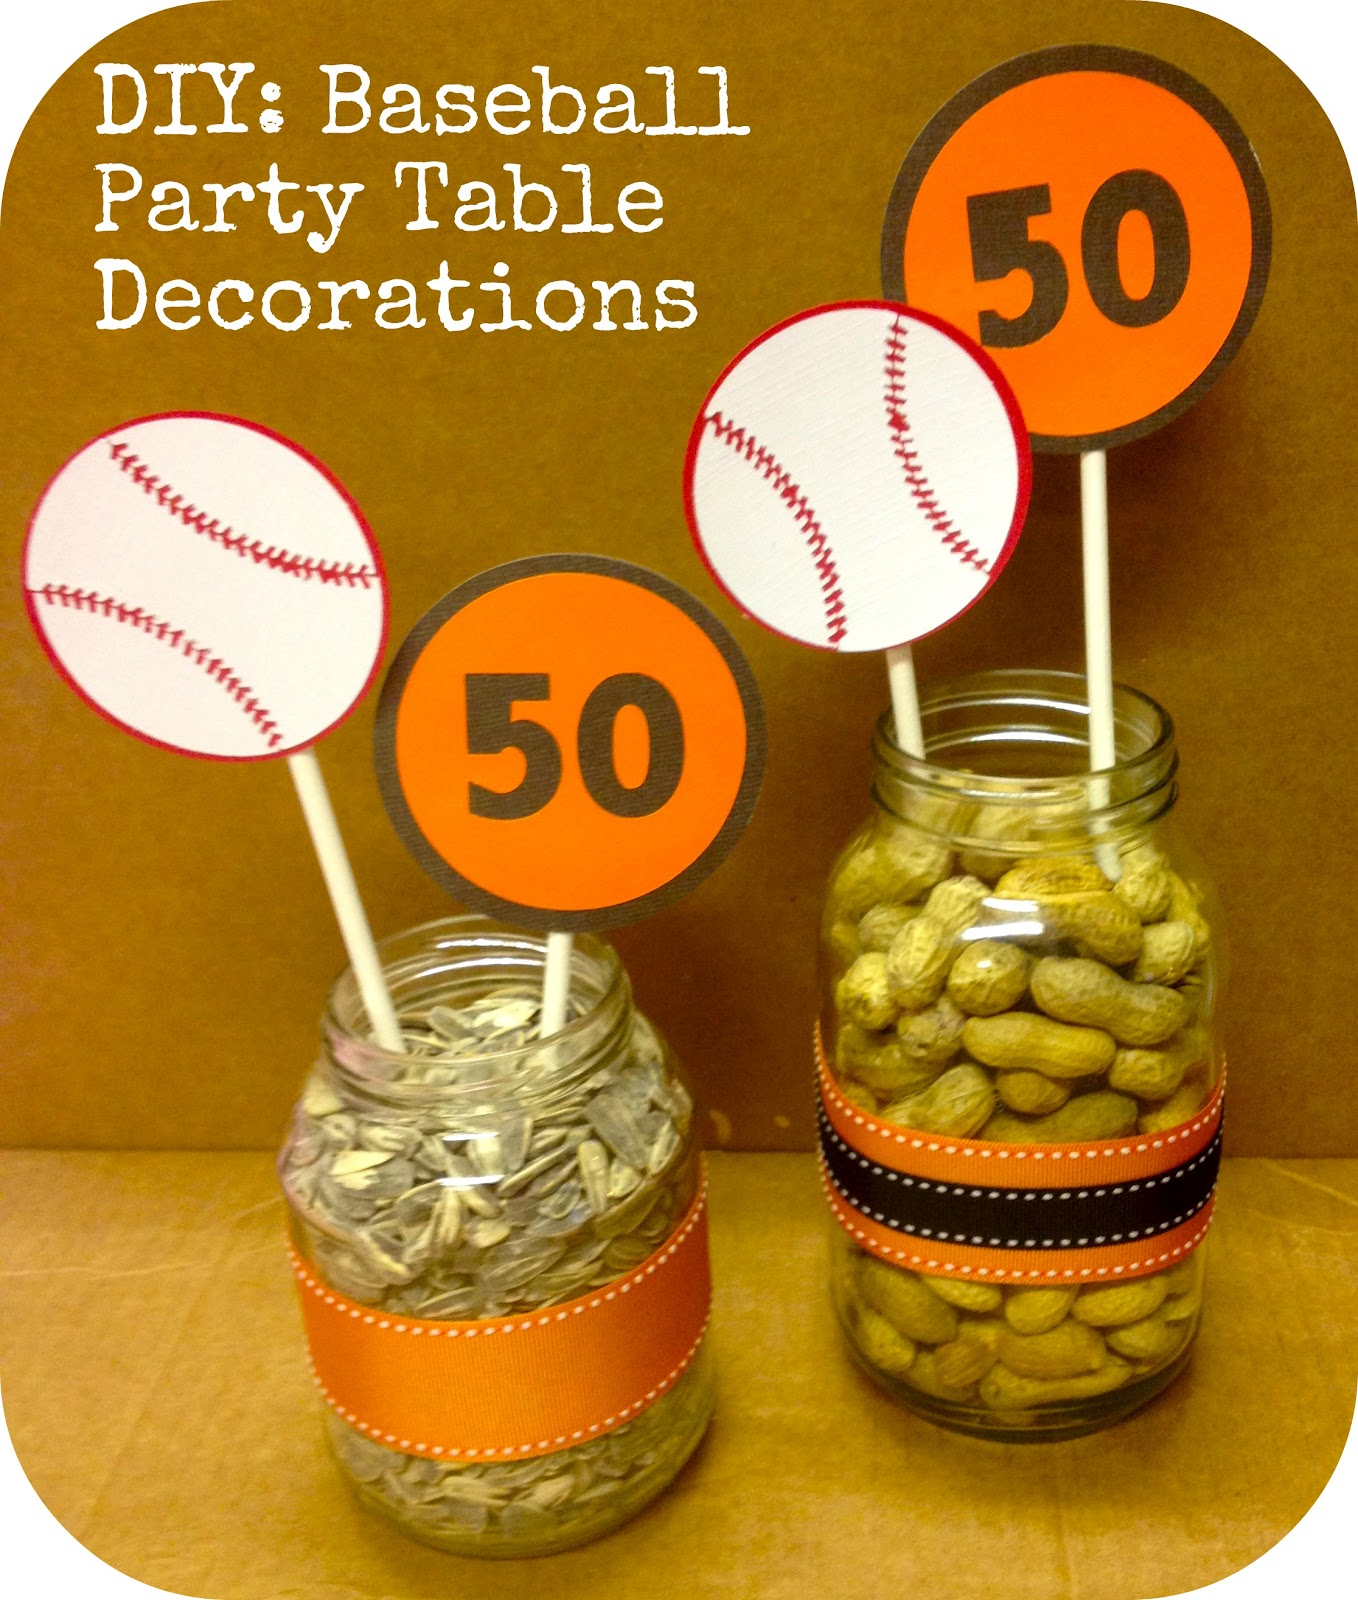 measure once, cut twice: baseball party: table decorations {part 3}